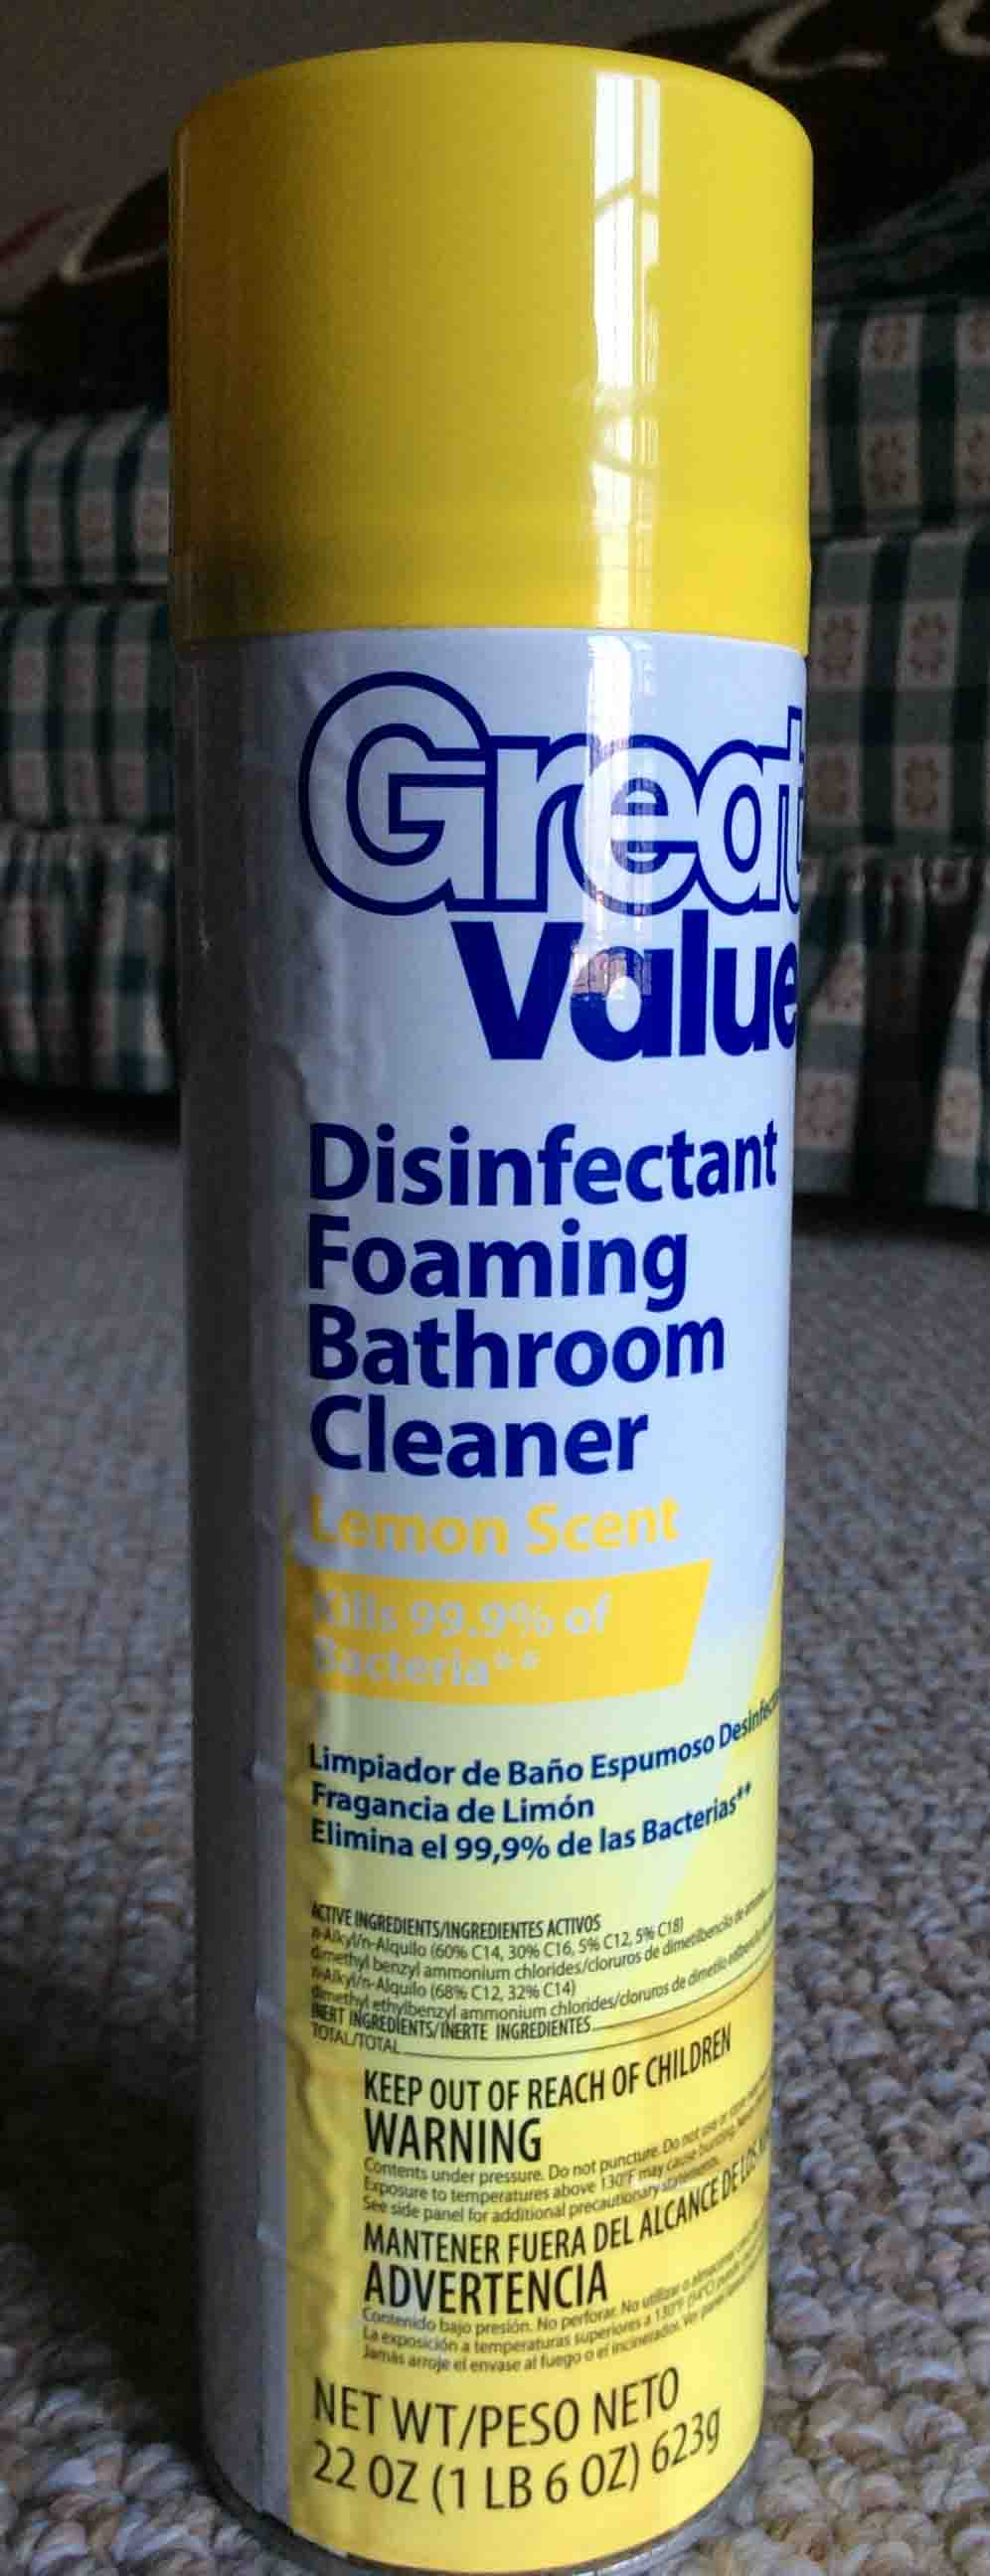 Uncategorized scrub free bathroom cleaner msds - Picture Of A 22 Ounce Can Of Great Value Disinfectant Foaming Bathroom Cleaner Lemon Scent